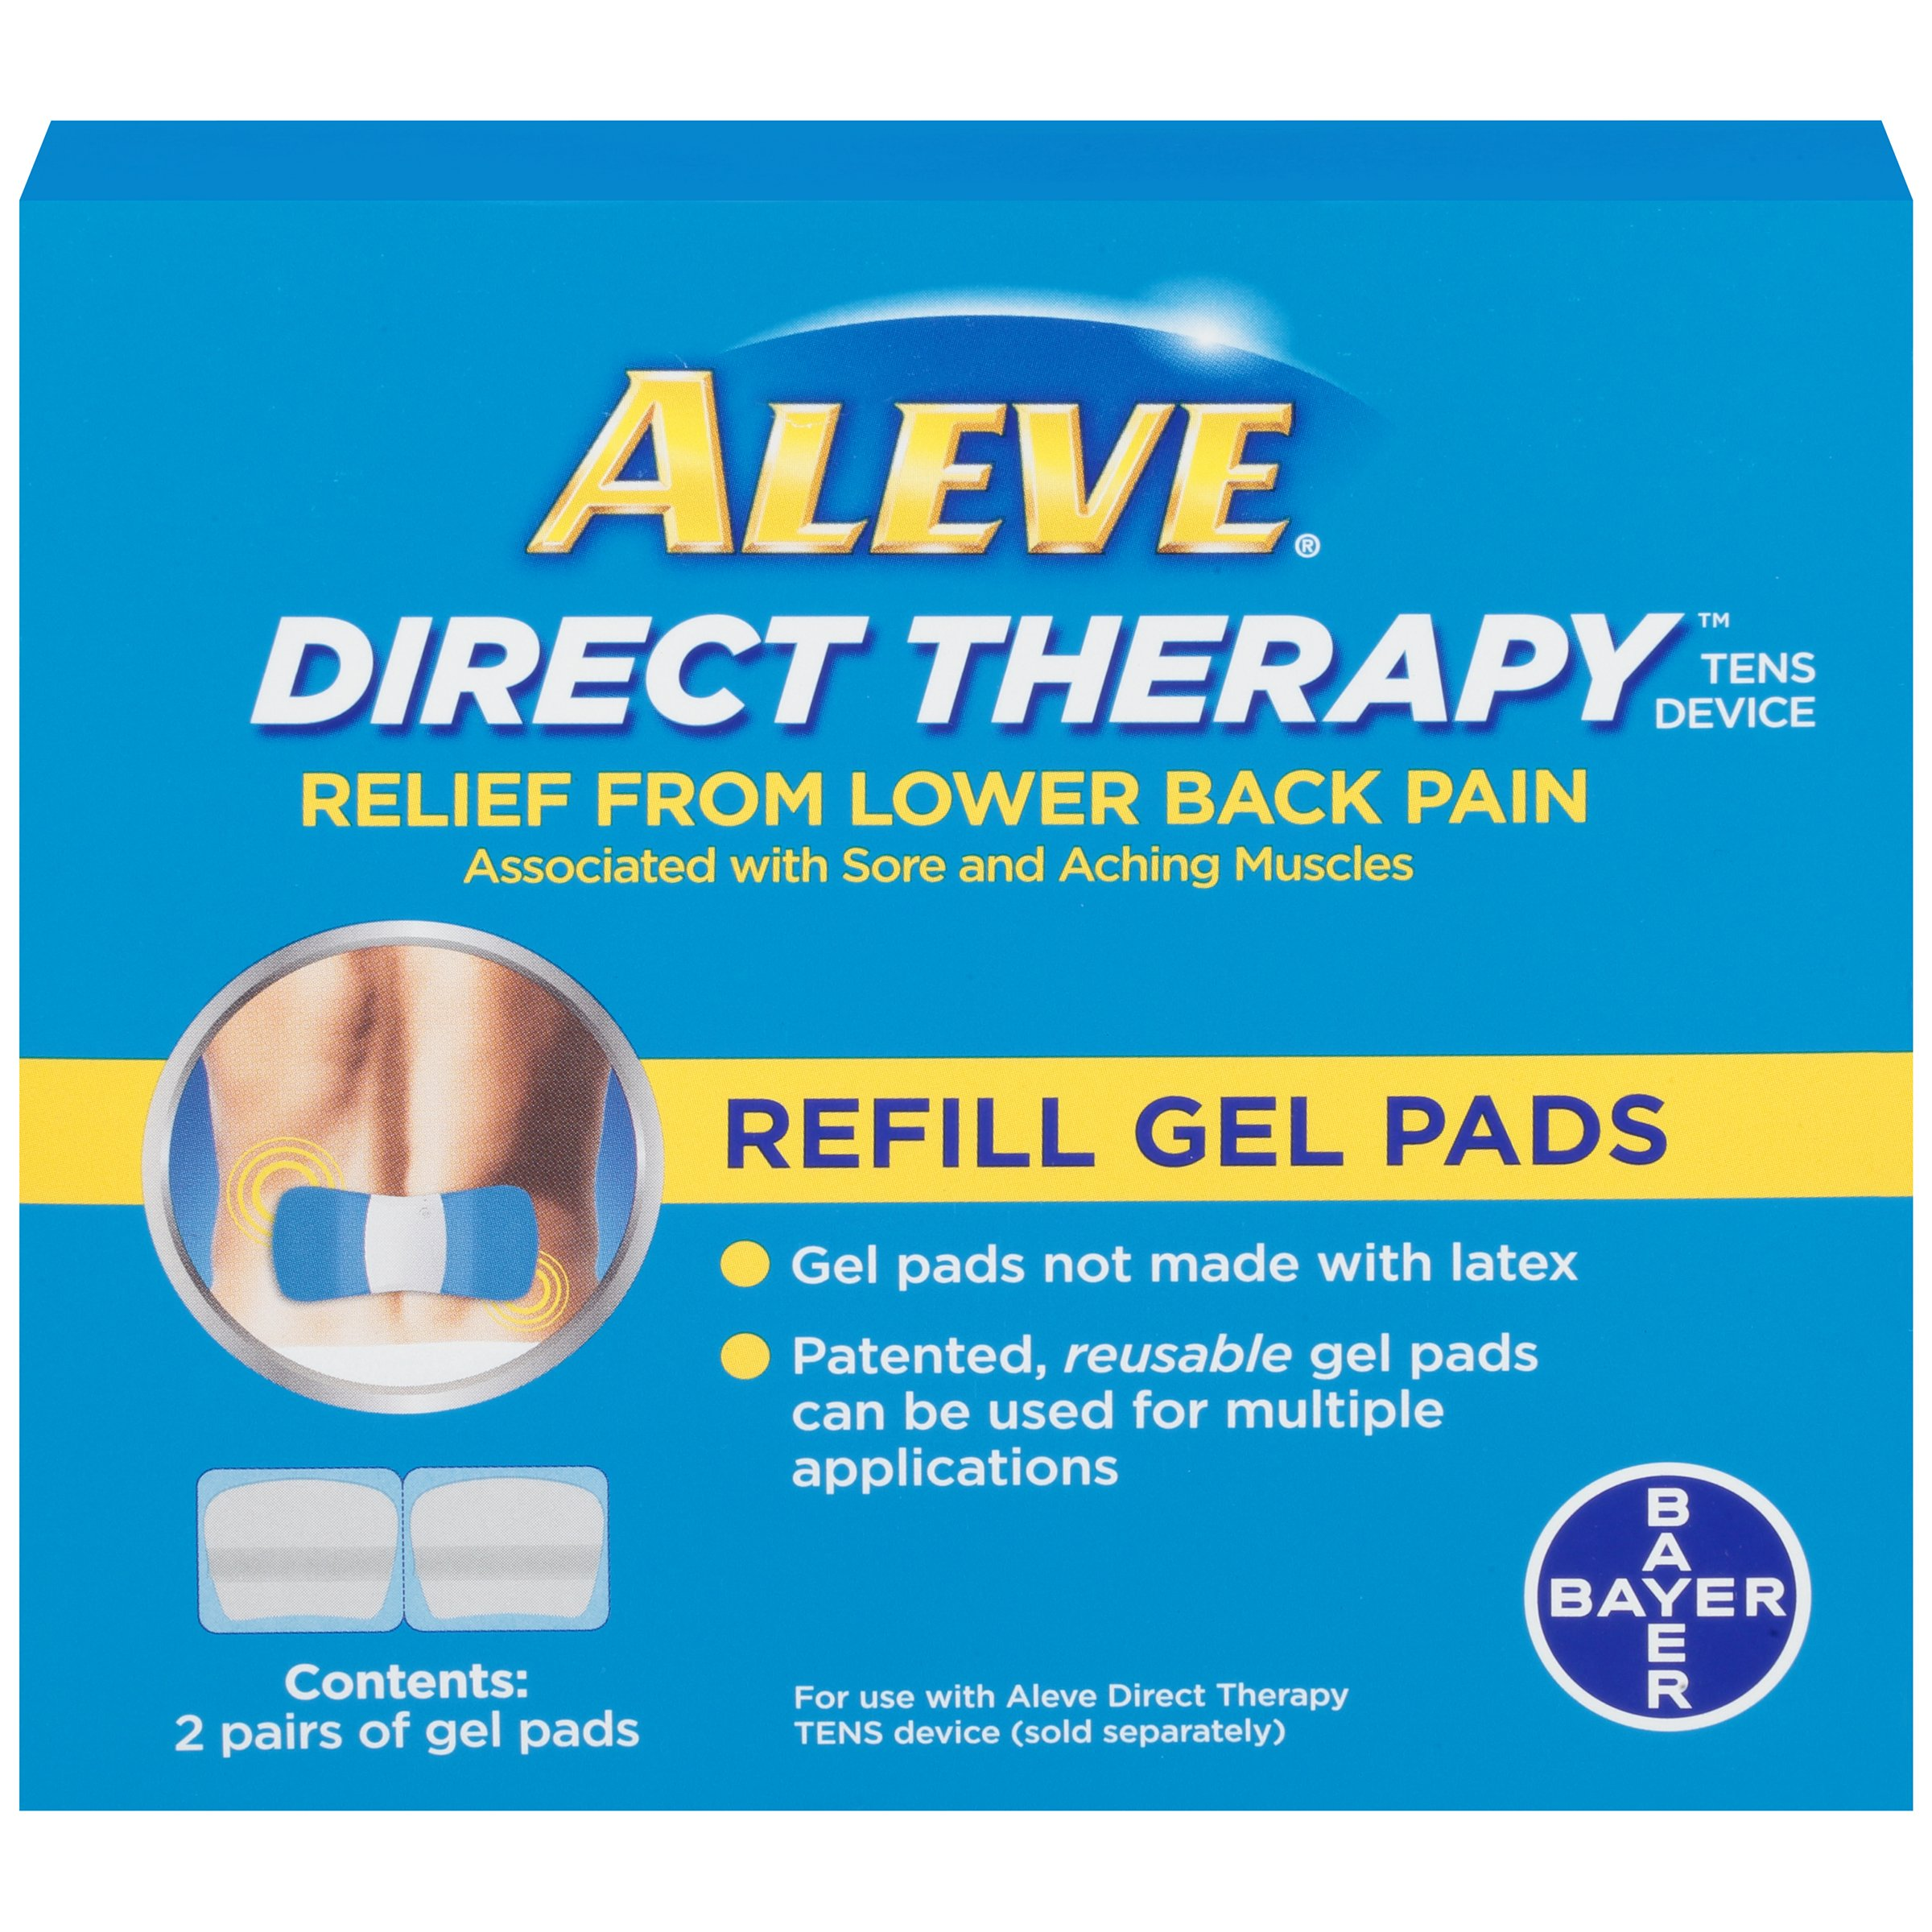 Aleve Direct Therapy - Refill Gel Pads (2 pairs of gel pads) by Aleve